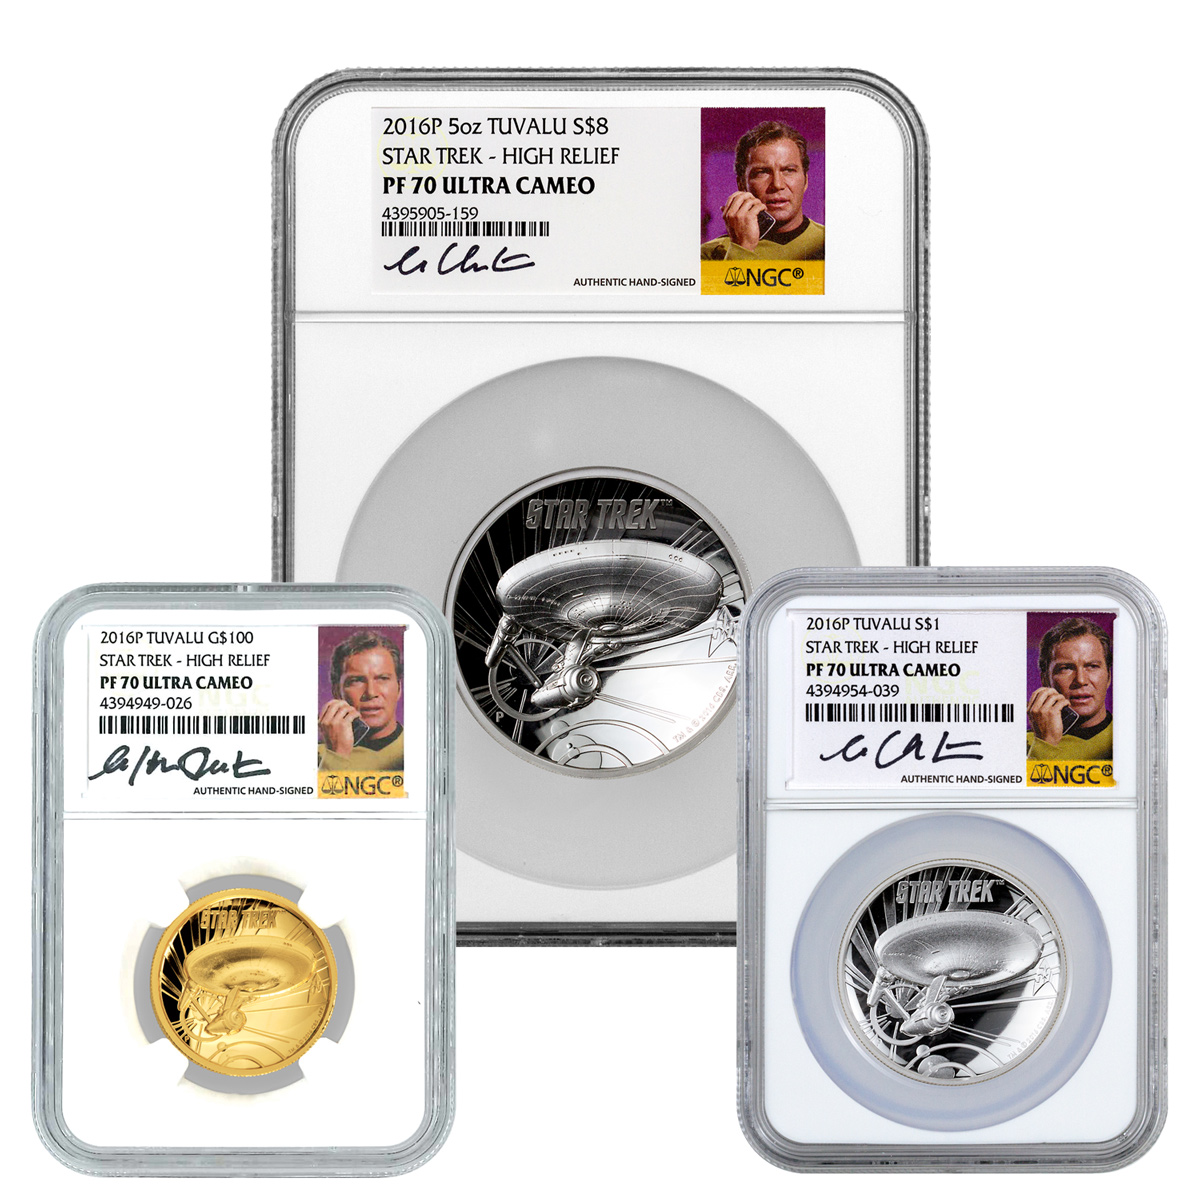 2016 Tuvalu Star Trek - USS Enterprise High Relief Gold and Silver Proof 3-Coin Set NGC PF70 UC (William Shatner Signed Label)